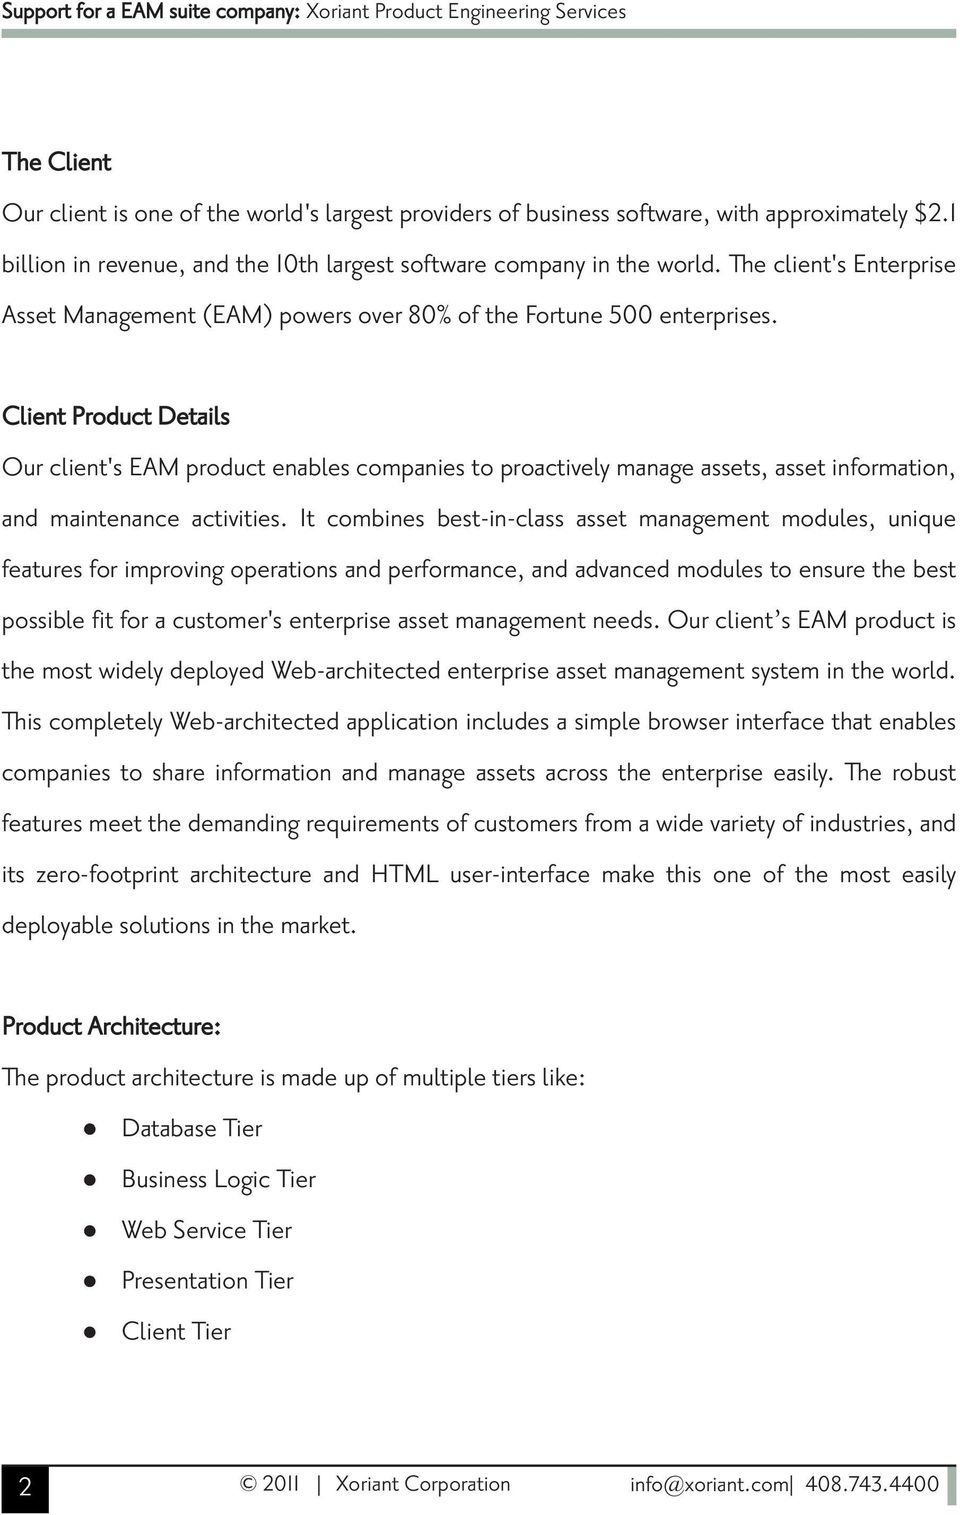 Client Product Details Our client's EAM product enables companies to proactively manage assets, asset information, and maintenance activities.